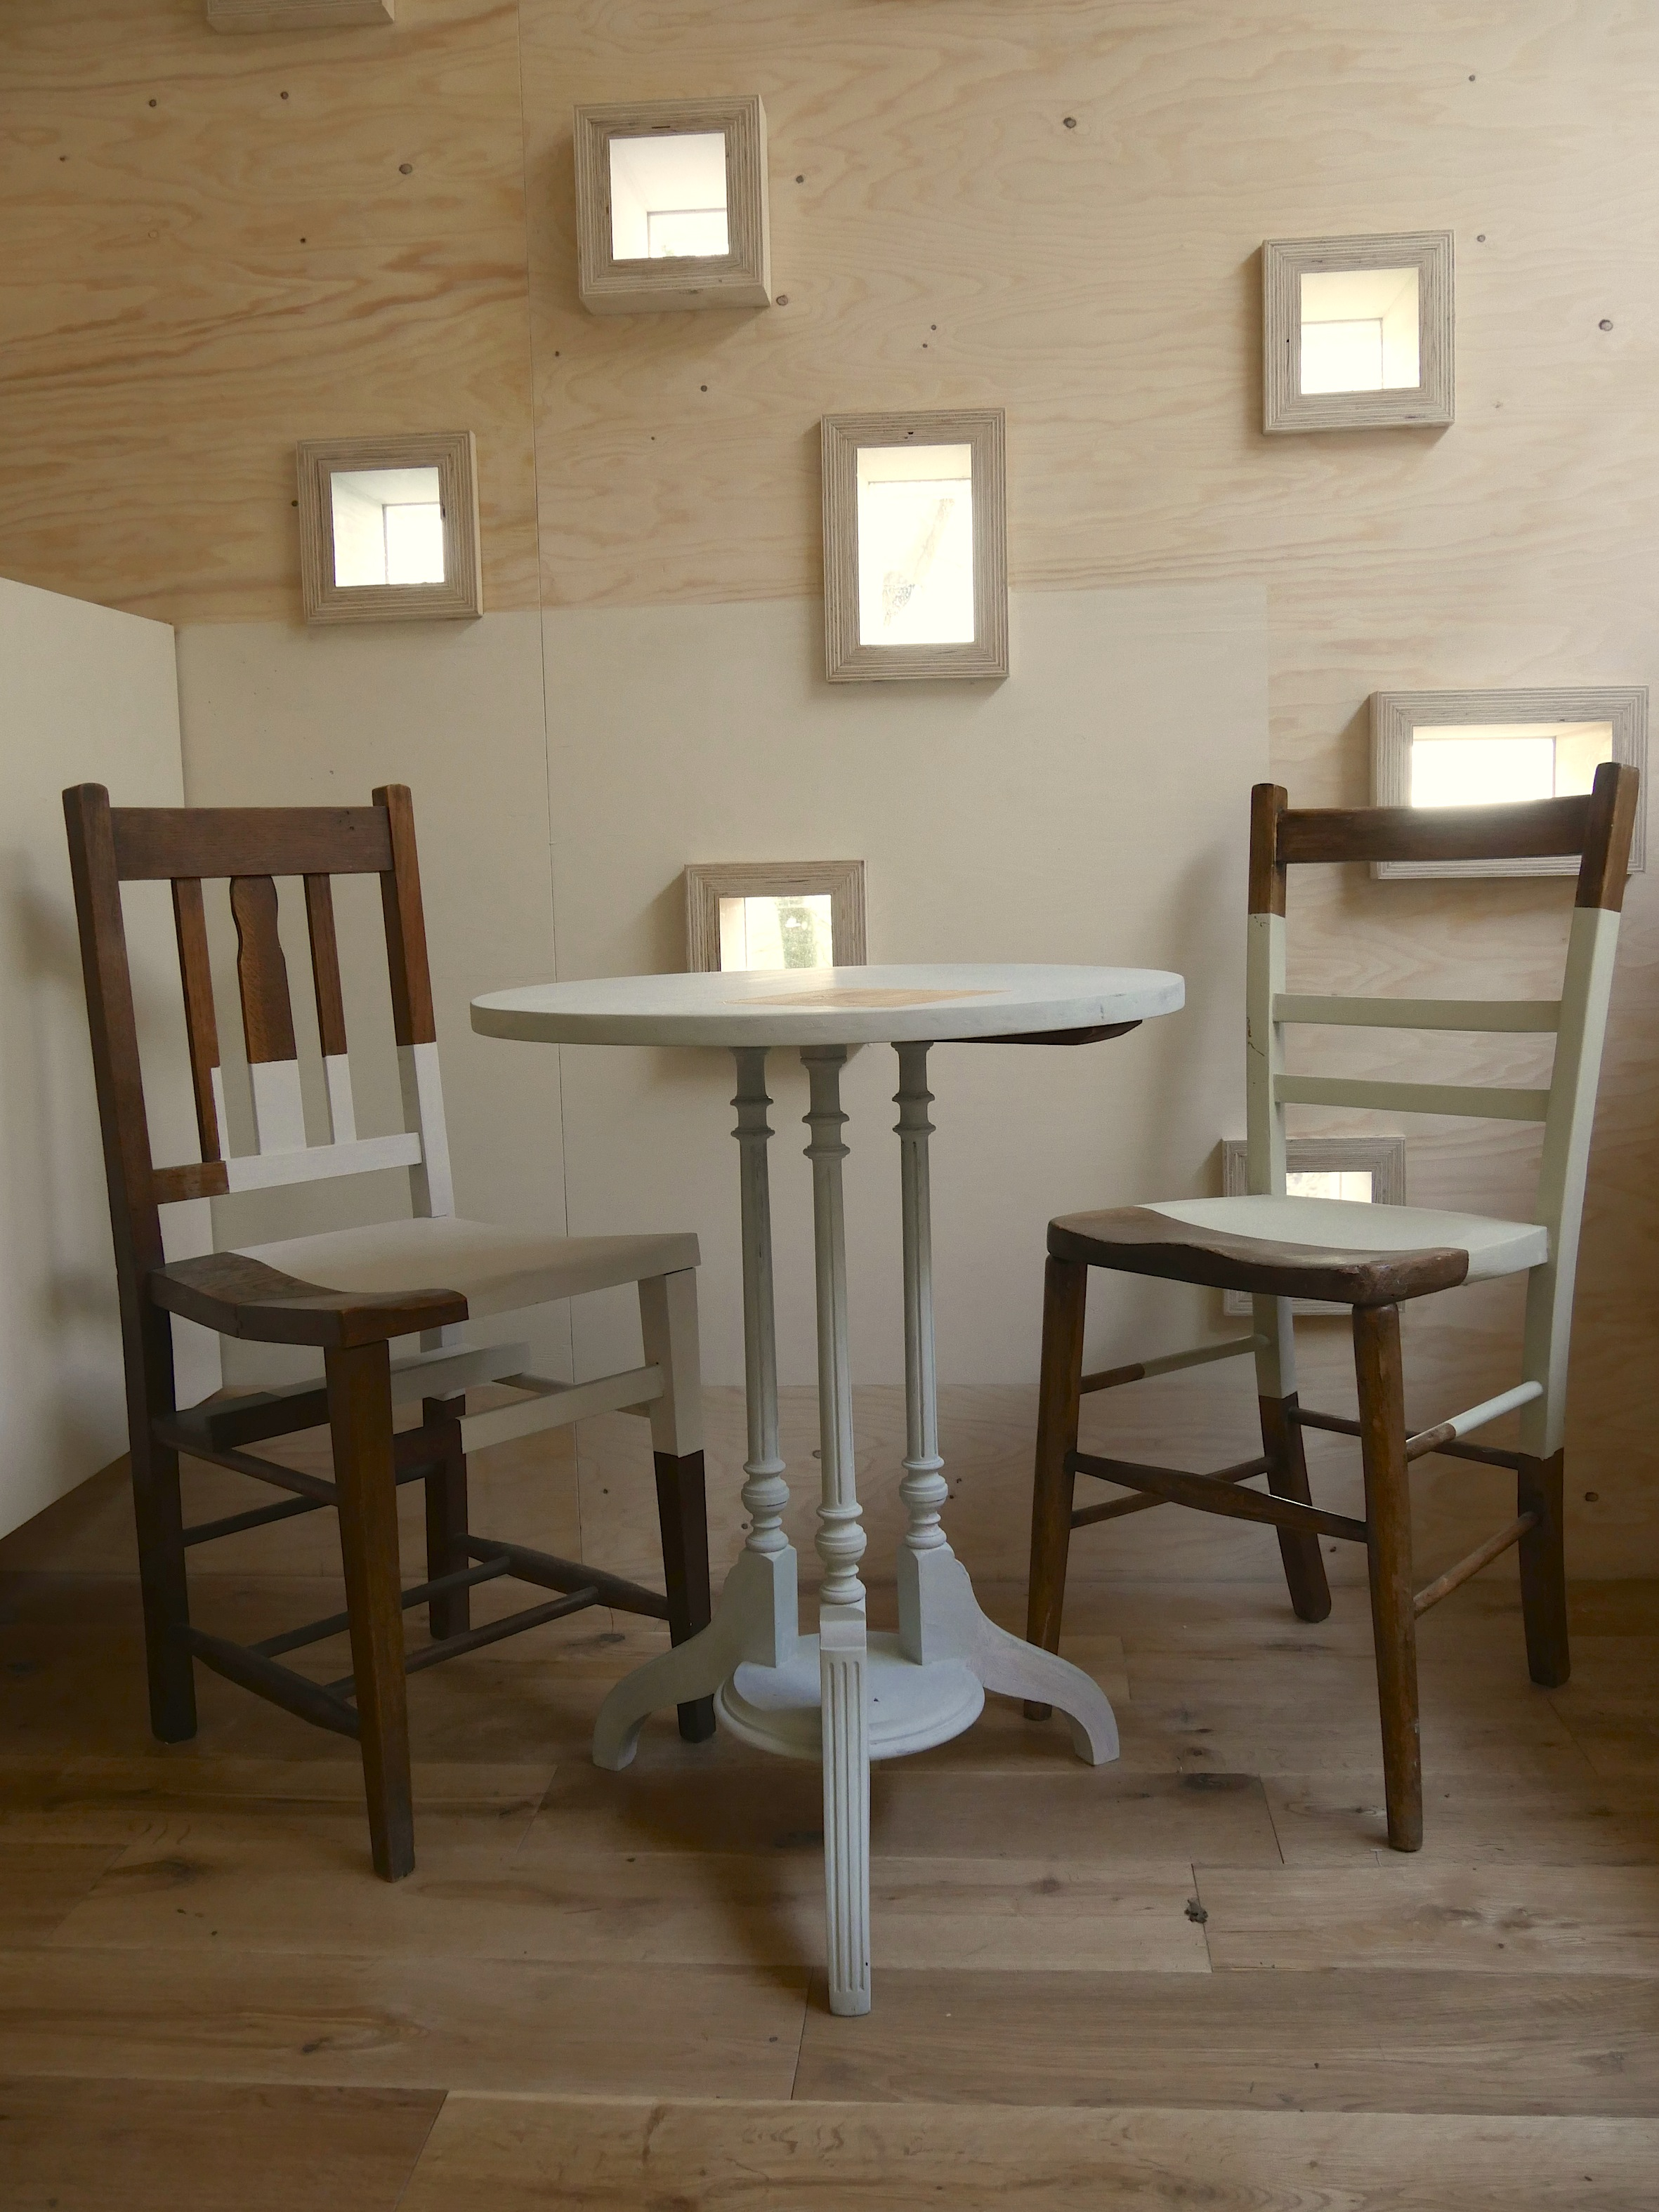 Brockloch Treehouse Furniture